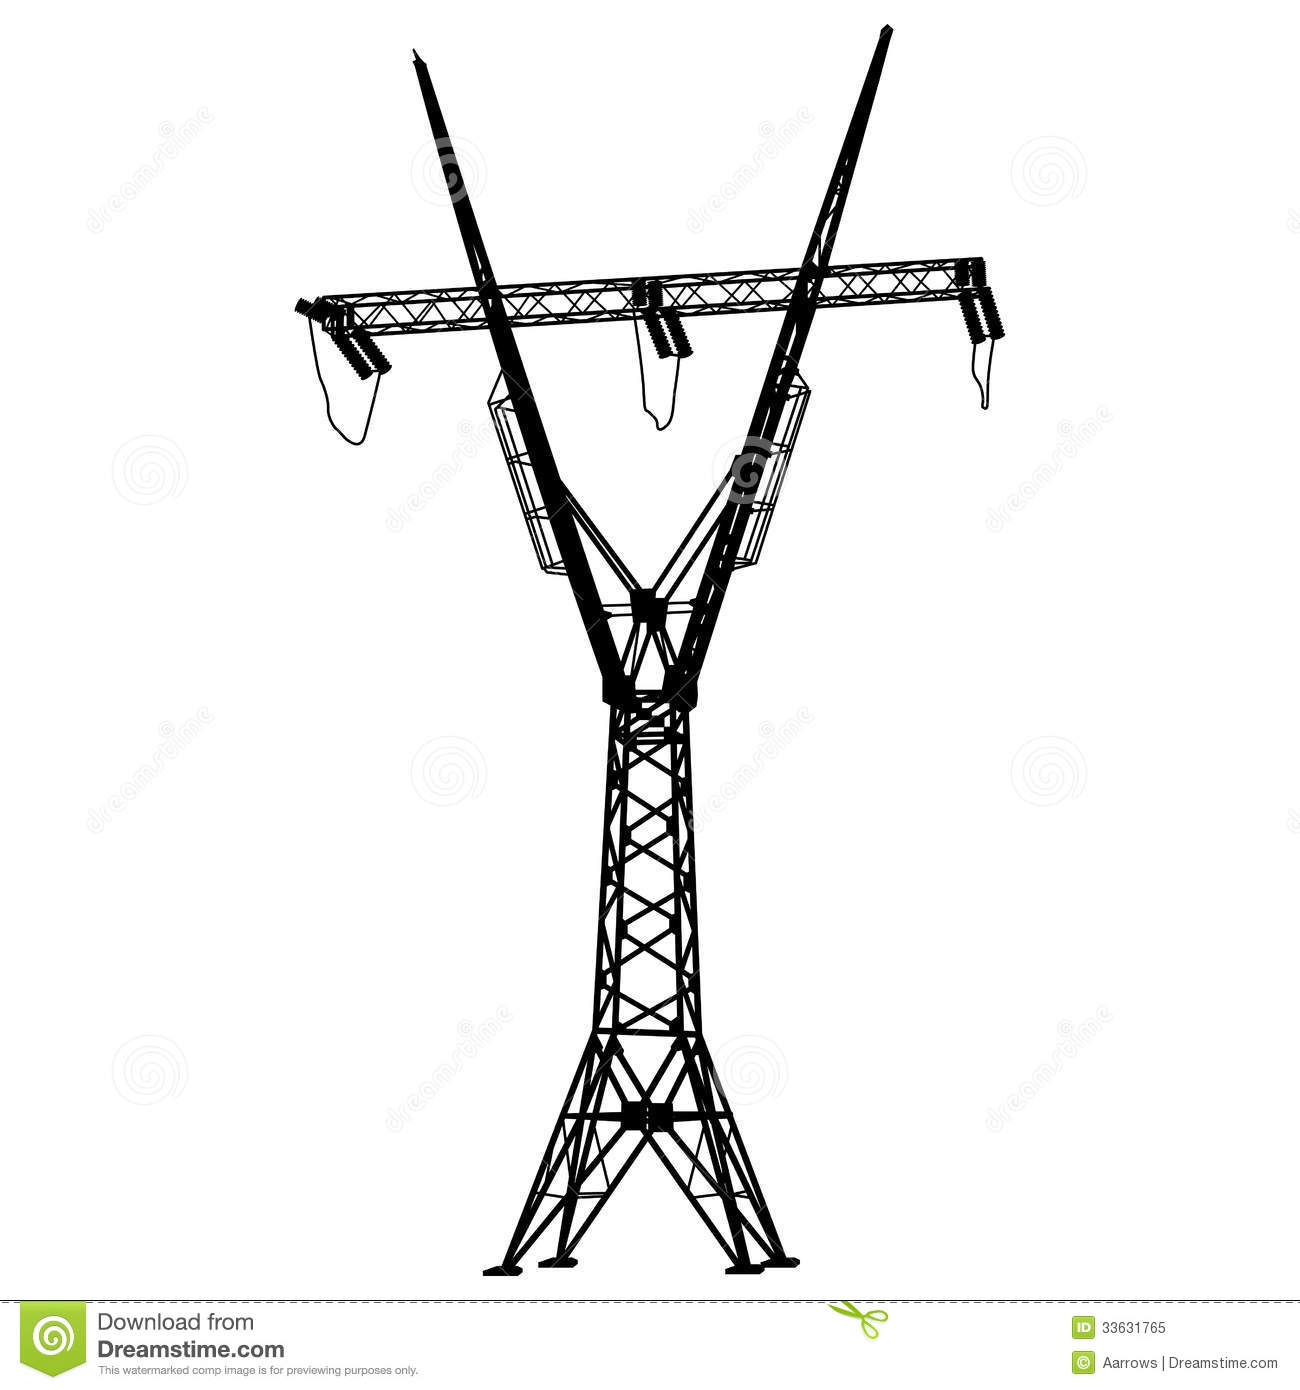 Voltage Power Lines Stock Vector Illustration Of